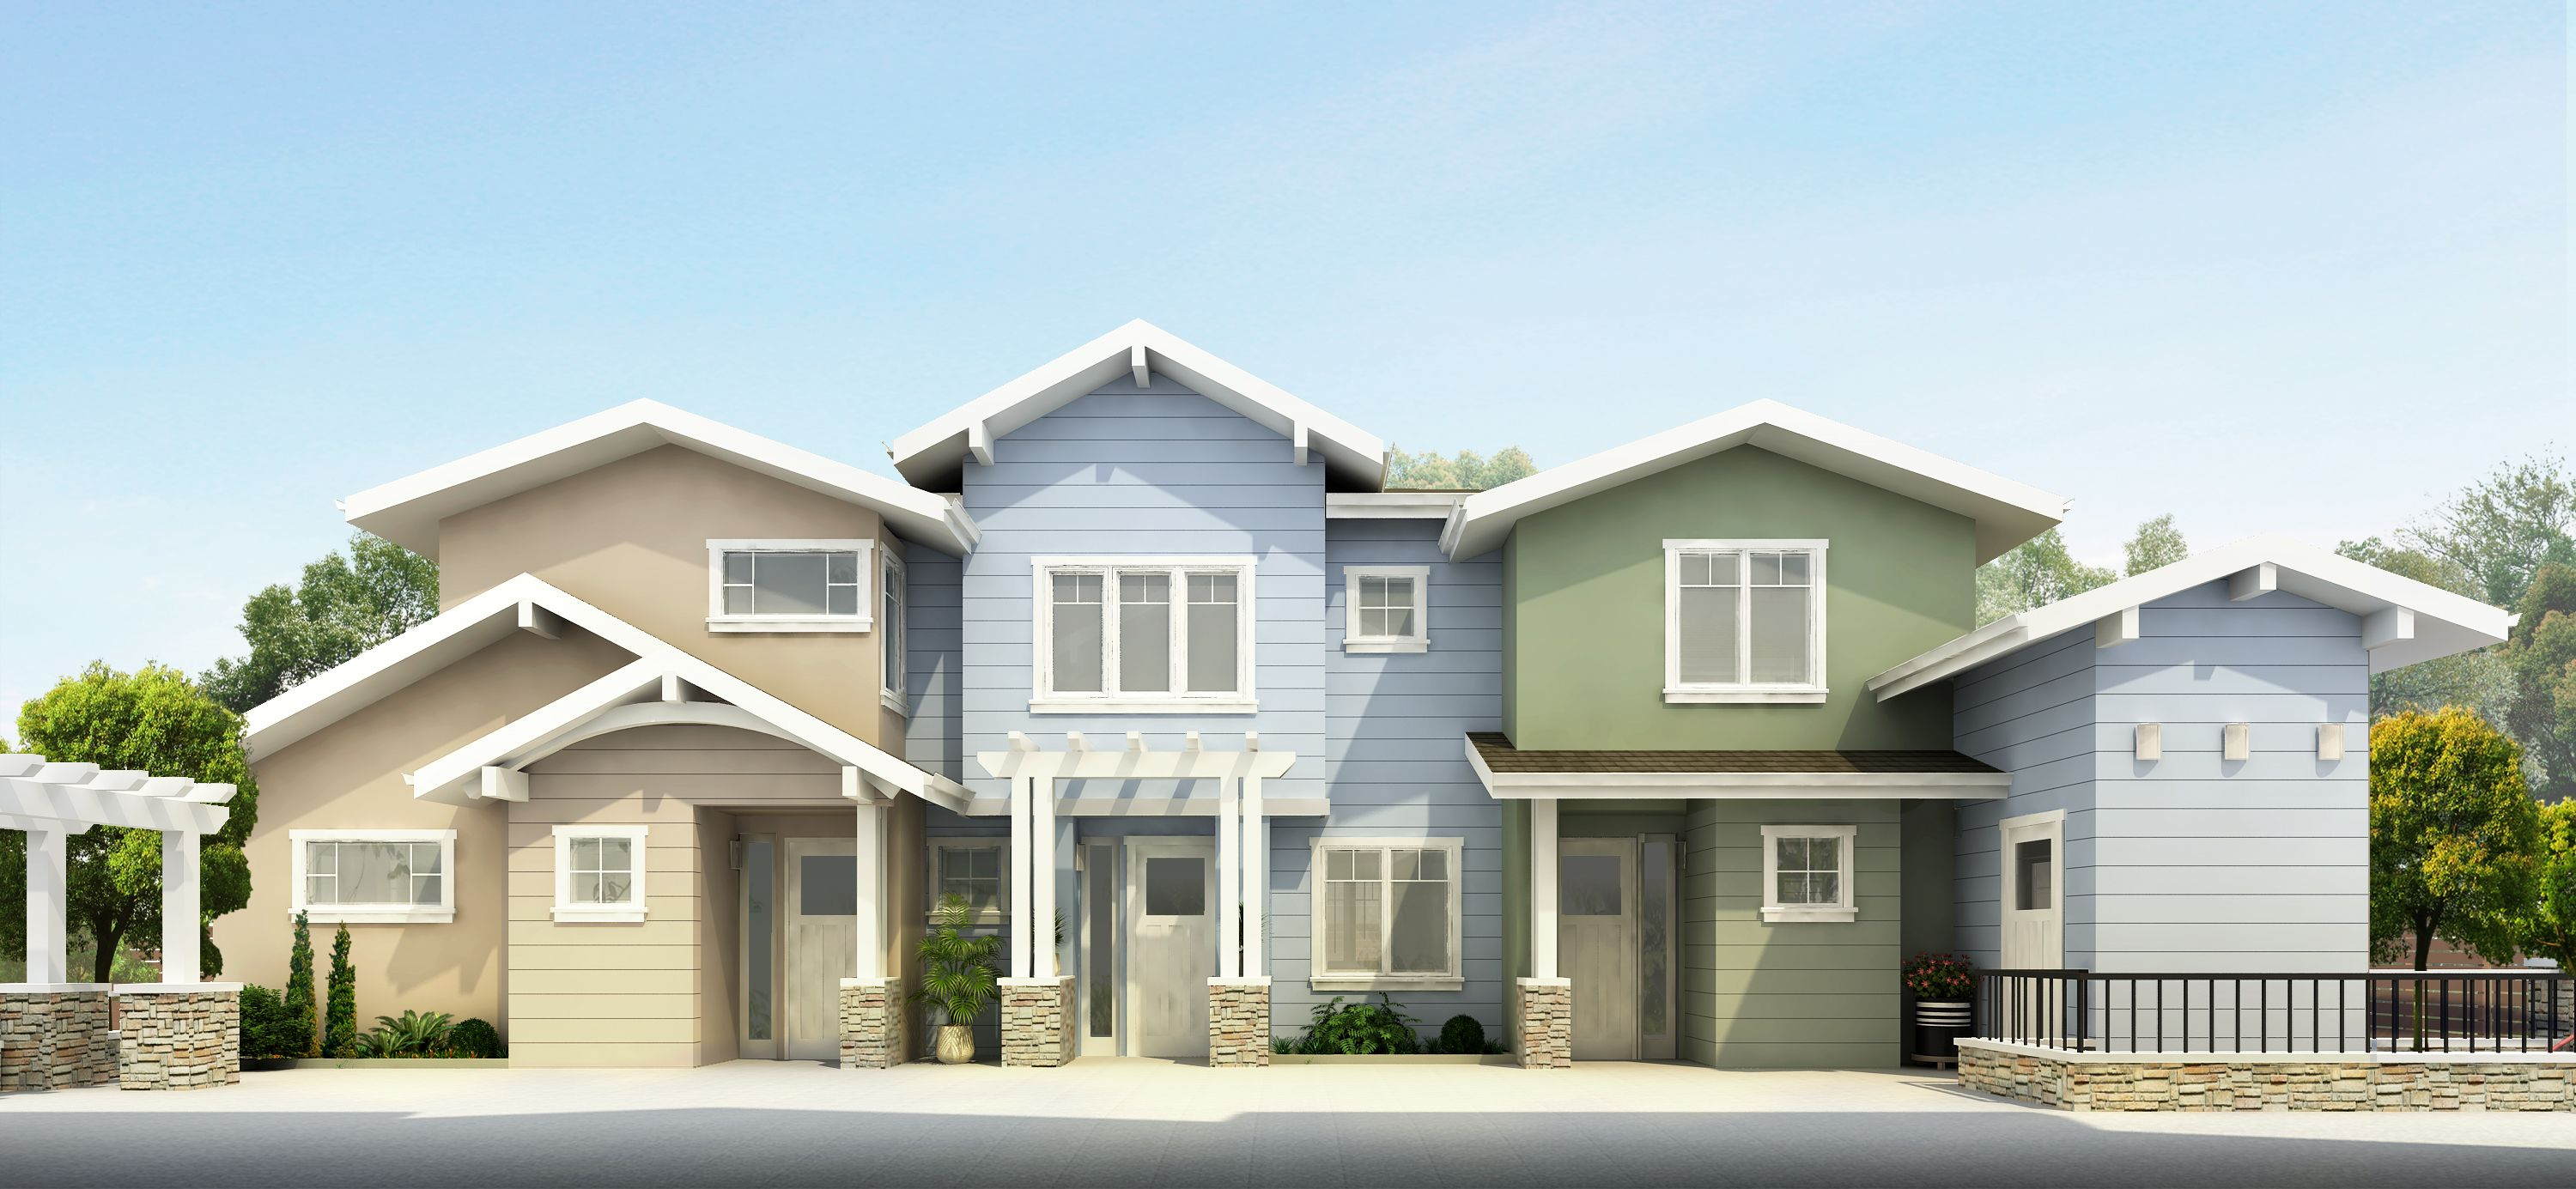 Exterior featured in the Unit 3 By Flynn Town Home Estates  in San Jose, CA